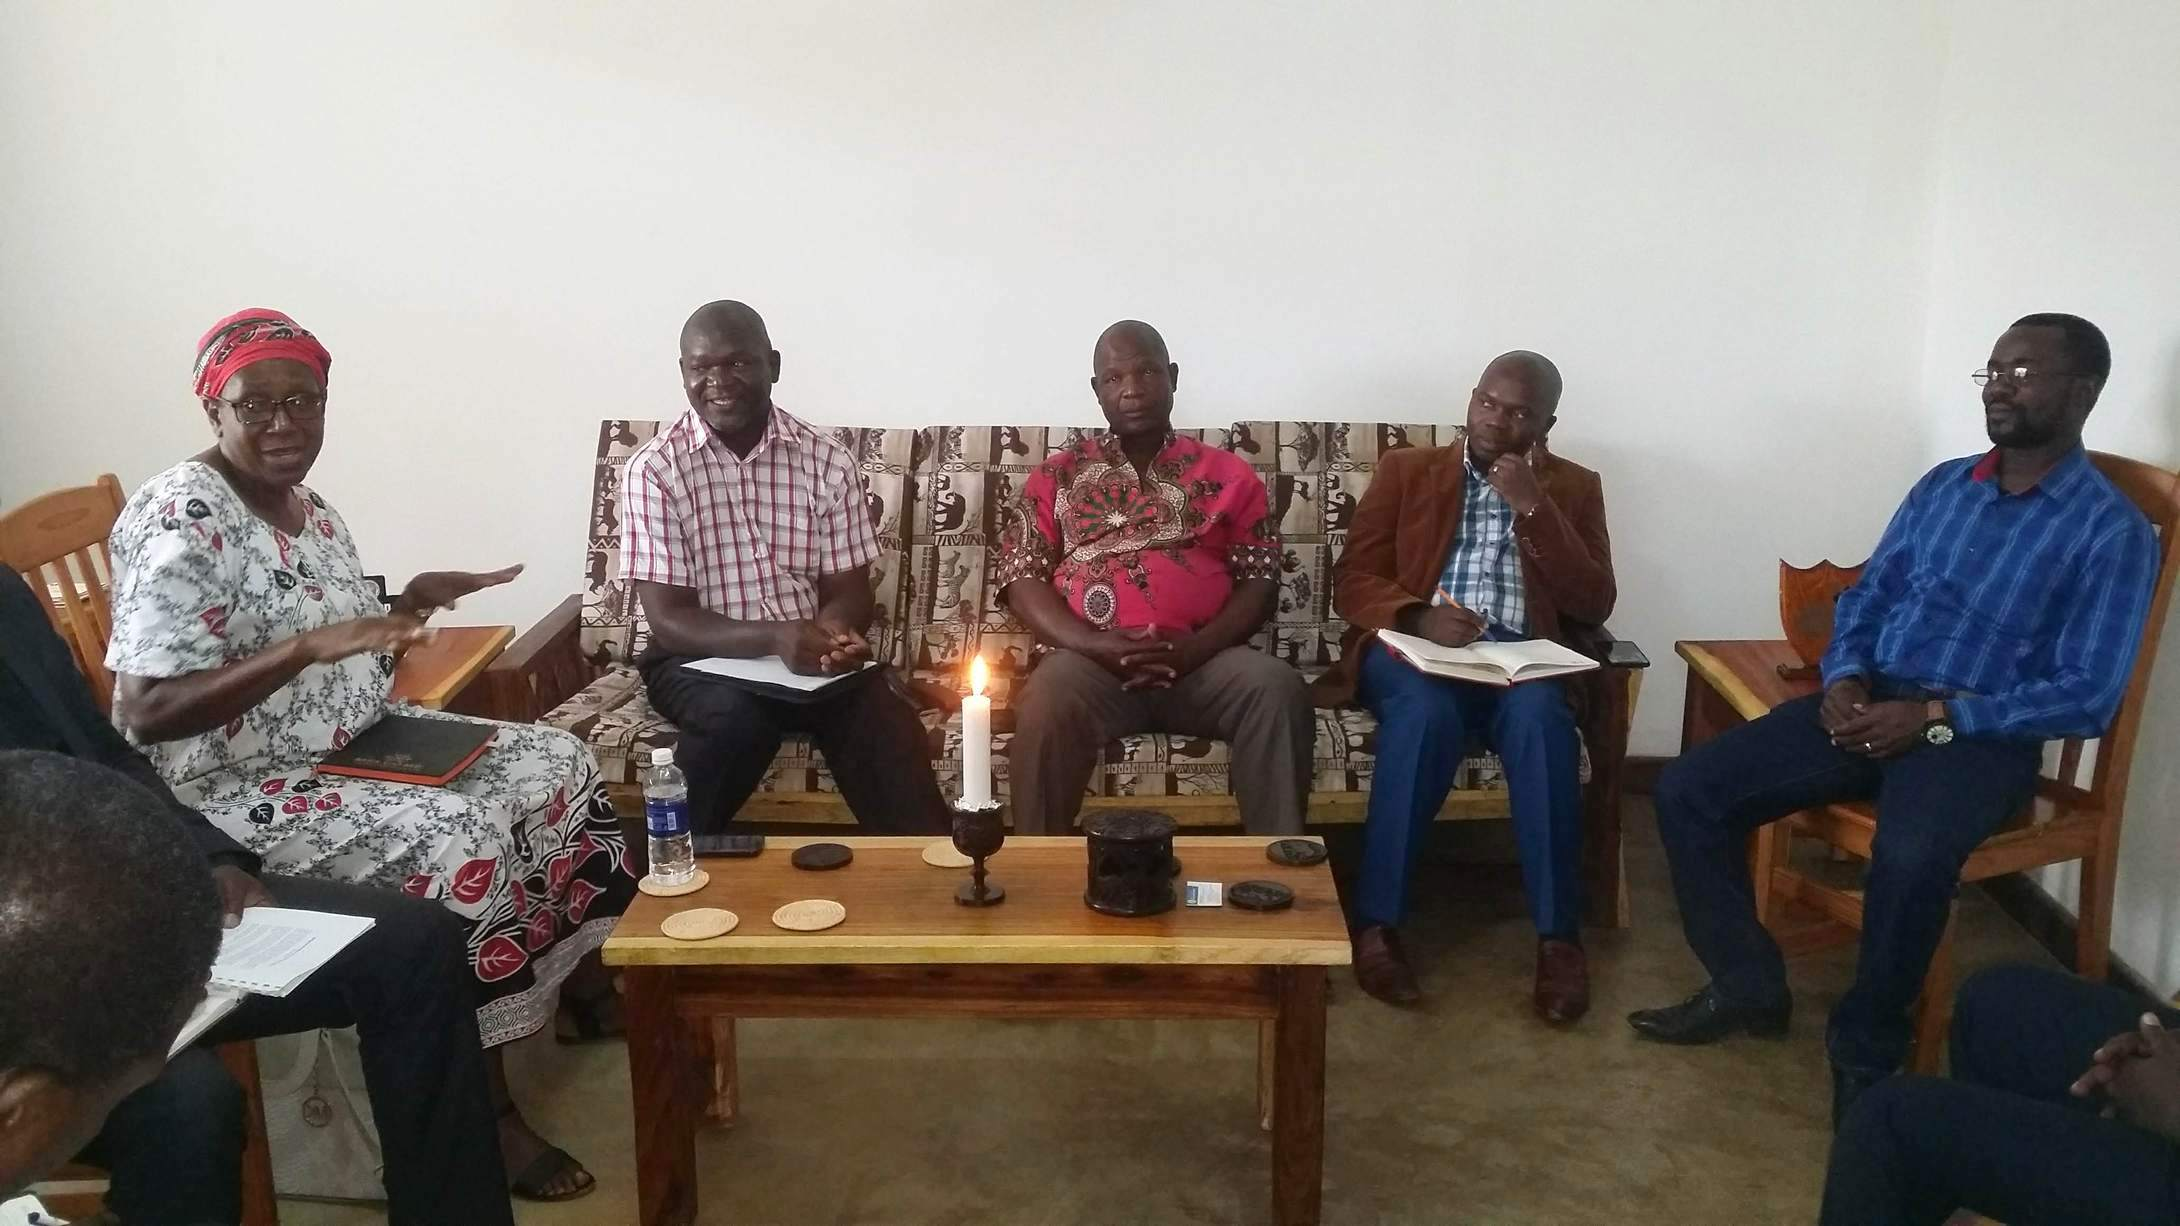 (from left to right): Reverends Jane Nyirongo, Thomson M'Kandawire, UPCSA's clerk; Sauros Phaika, UPCSA's moderator; Richard M'Kandawire, UPCSA's Copperbelt Presbytery's moderator; Kennedy Mhoni, UPCSA's Munali Presbytery's clerk.